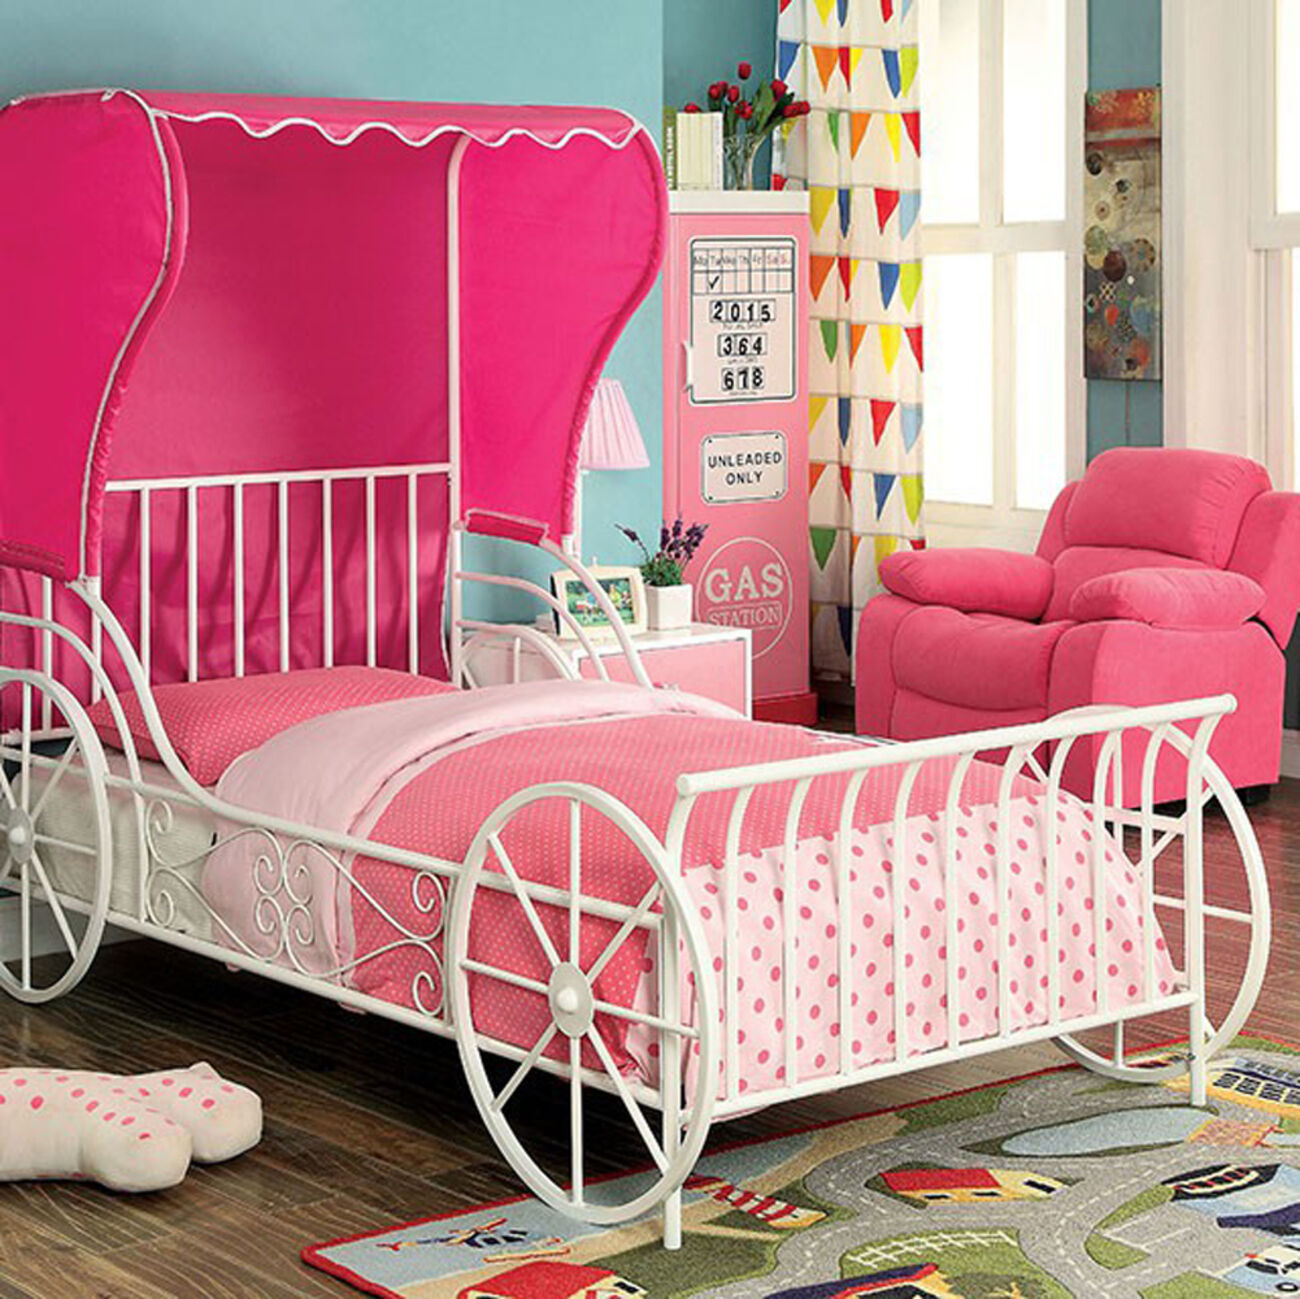 Metal Full Size Carriage Bed With Pink Wingback Tent, White